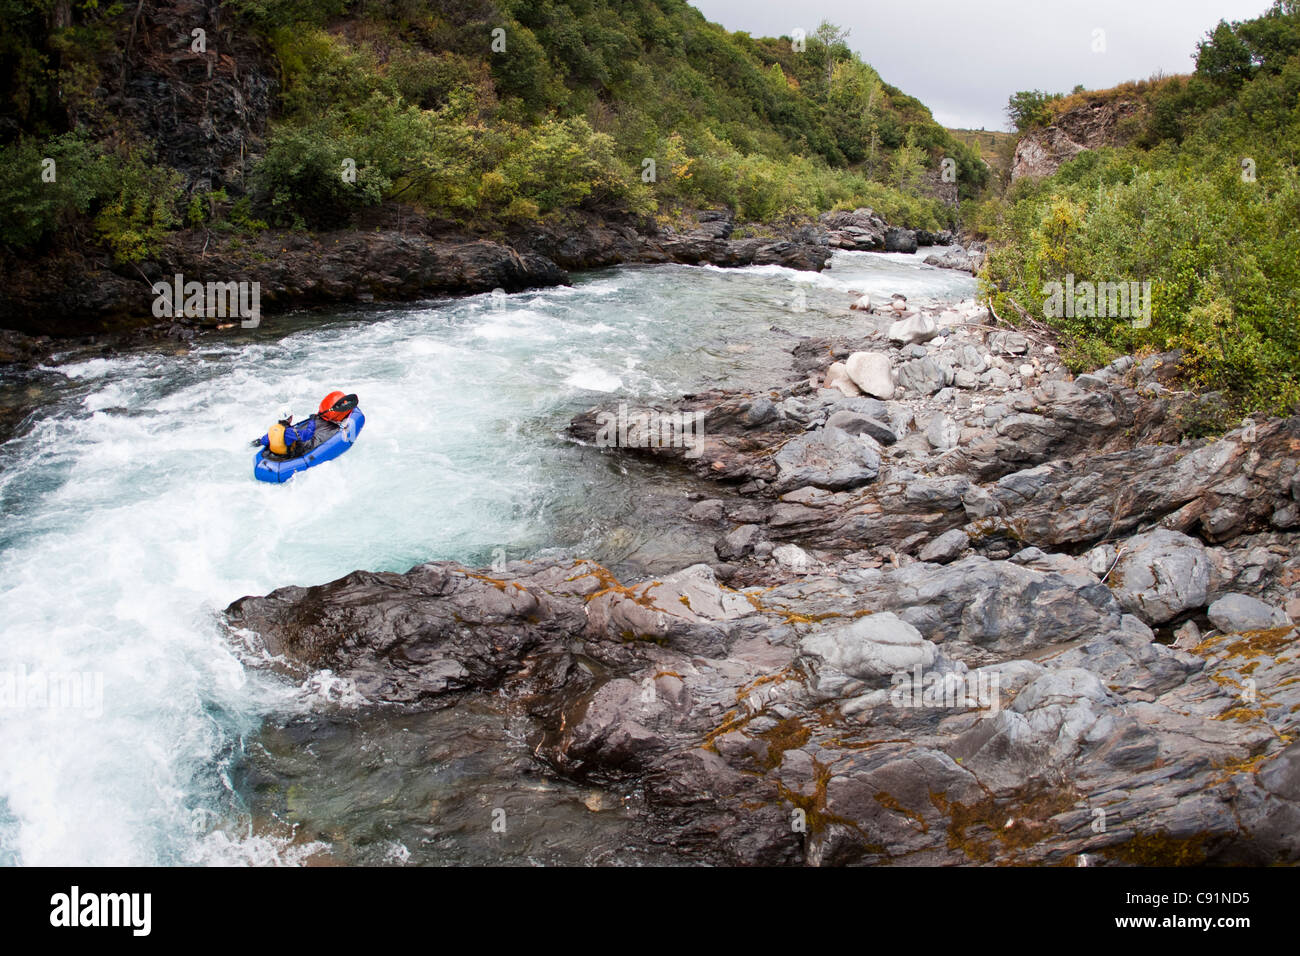 Woman packrafting whitewater on the East Fork of the Chulitna River, Alaska Range, Interior Alaska, Summer - Stock Image